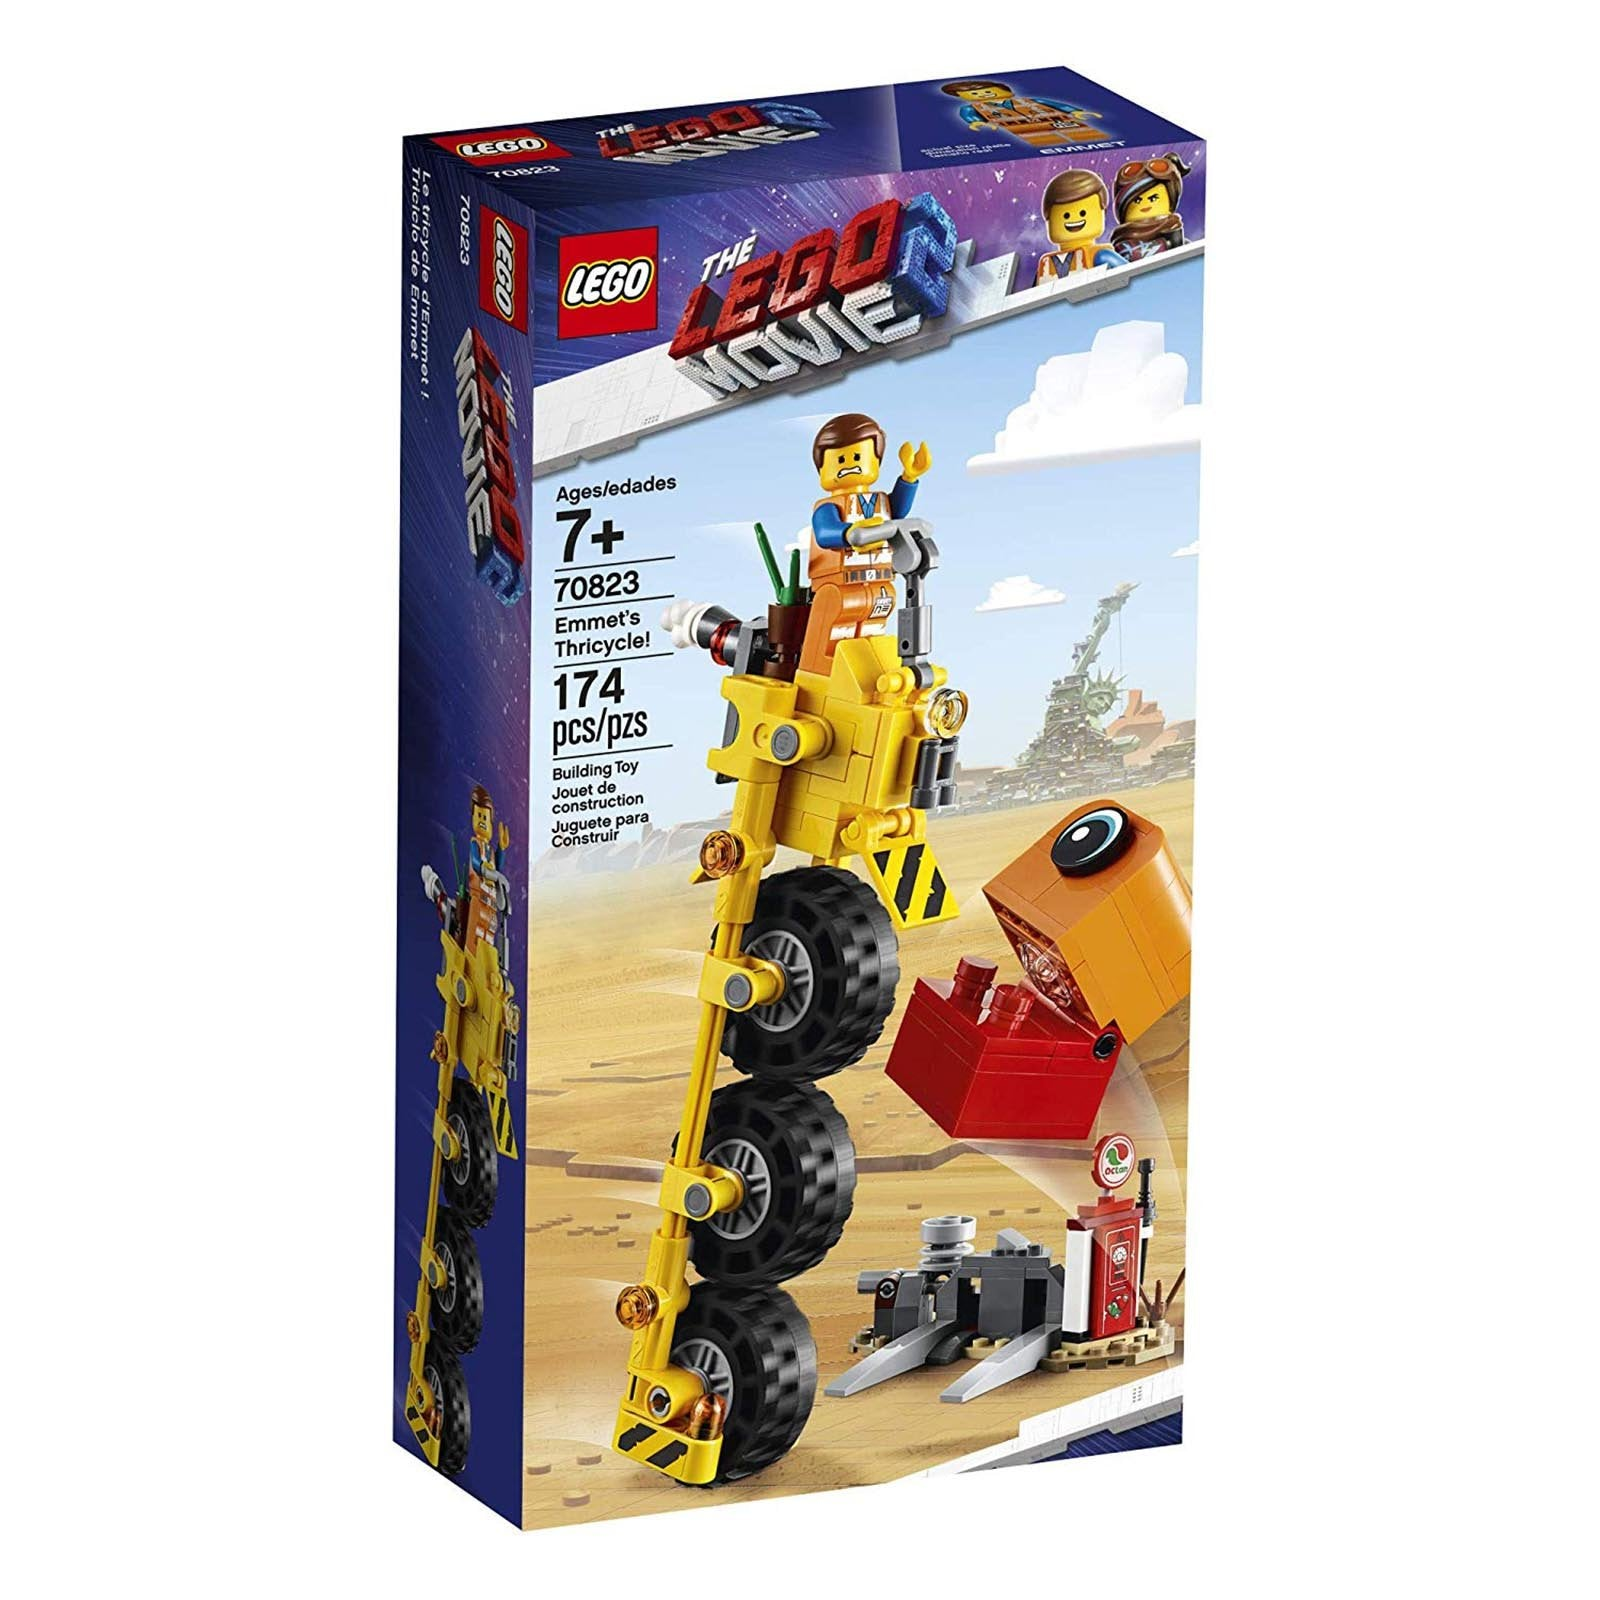 Lego The Lego Movie 2 Emmet S Thricycle Building Sets 70823 Radar Toys